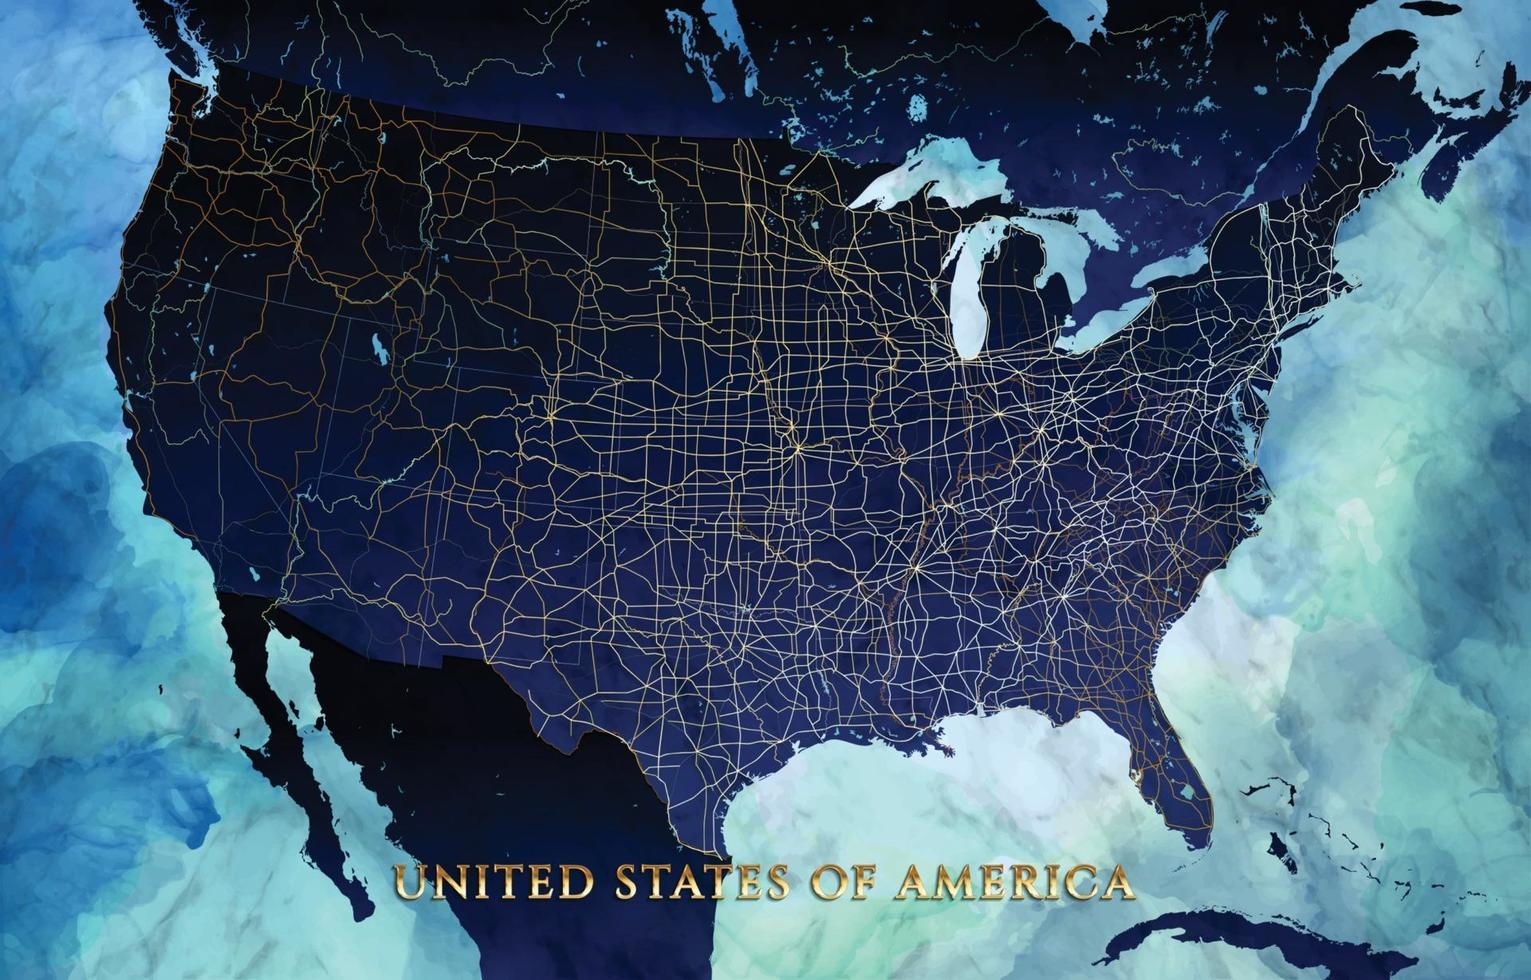 United States Of America in World Map Background vector